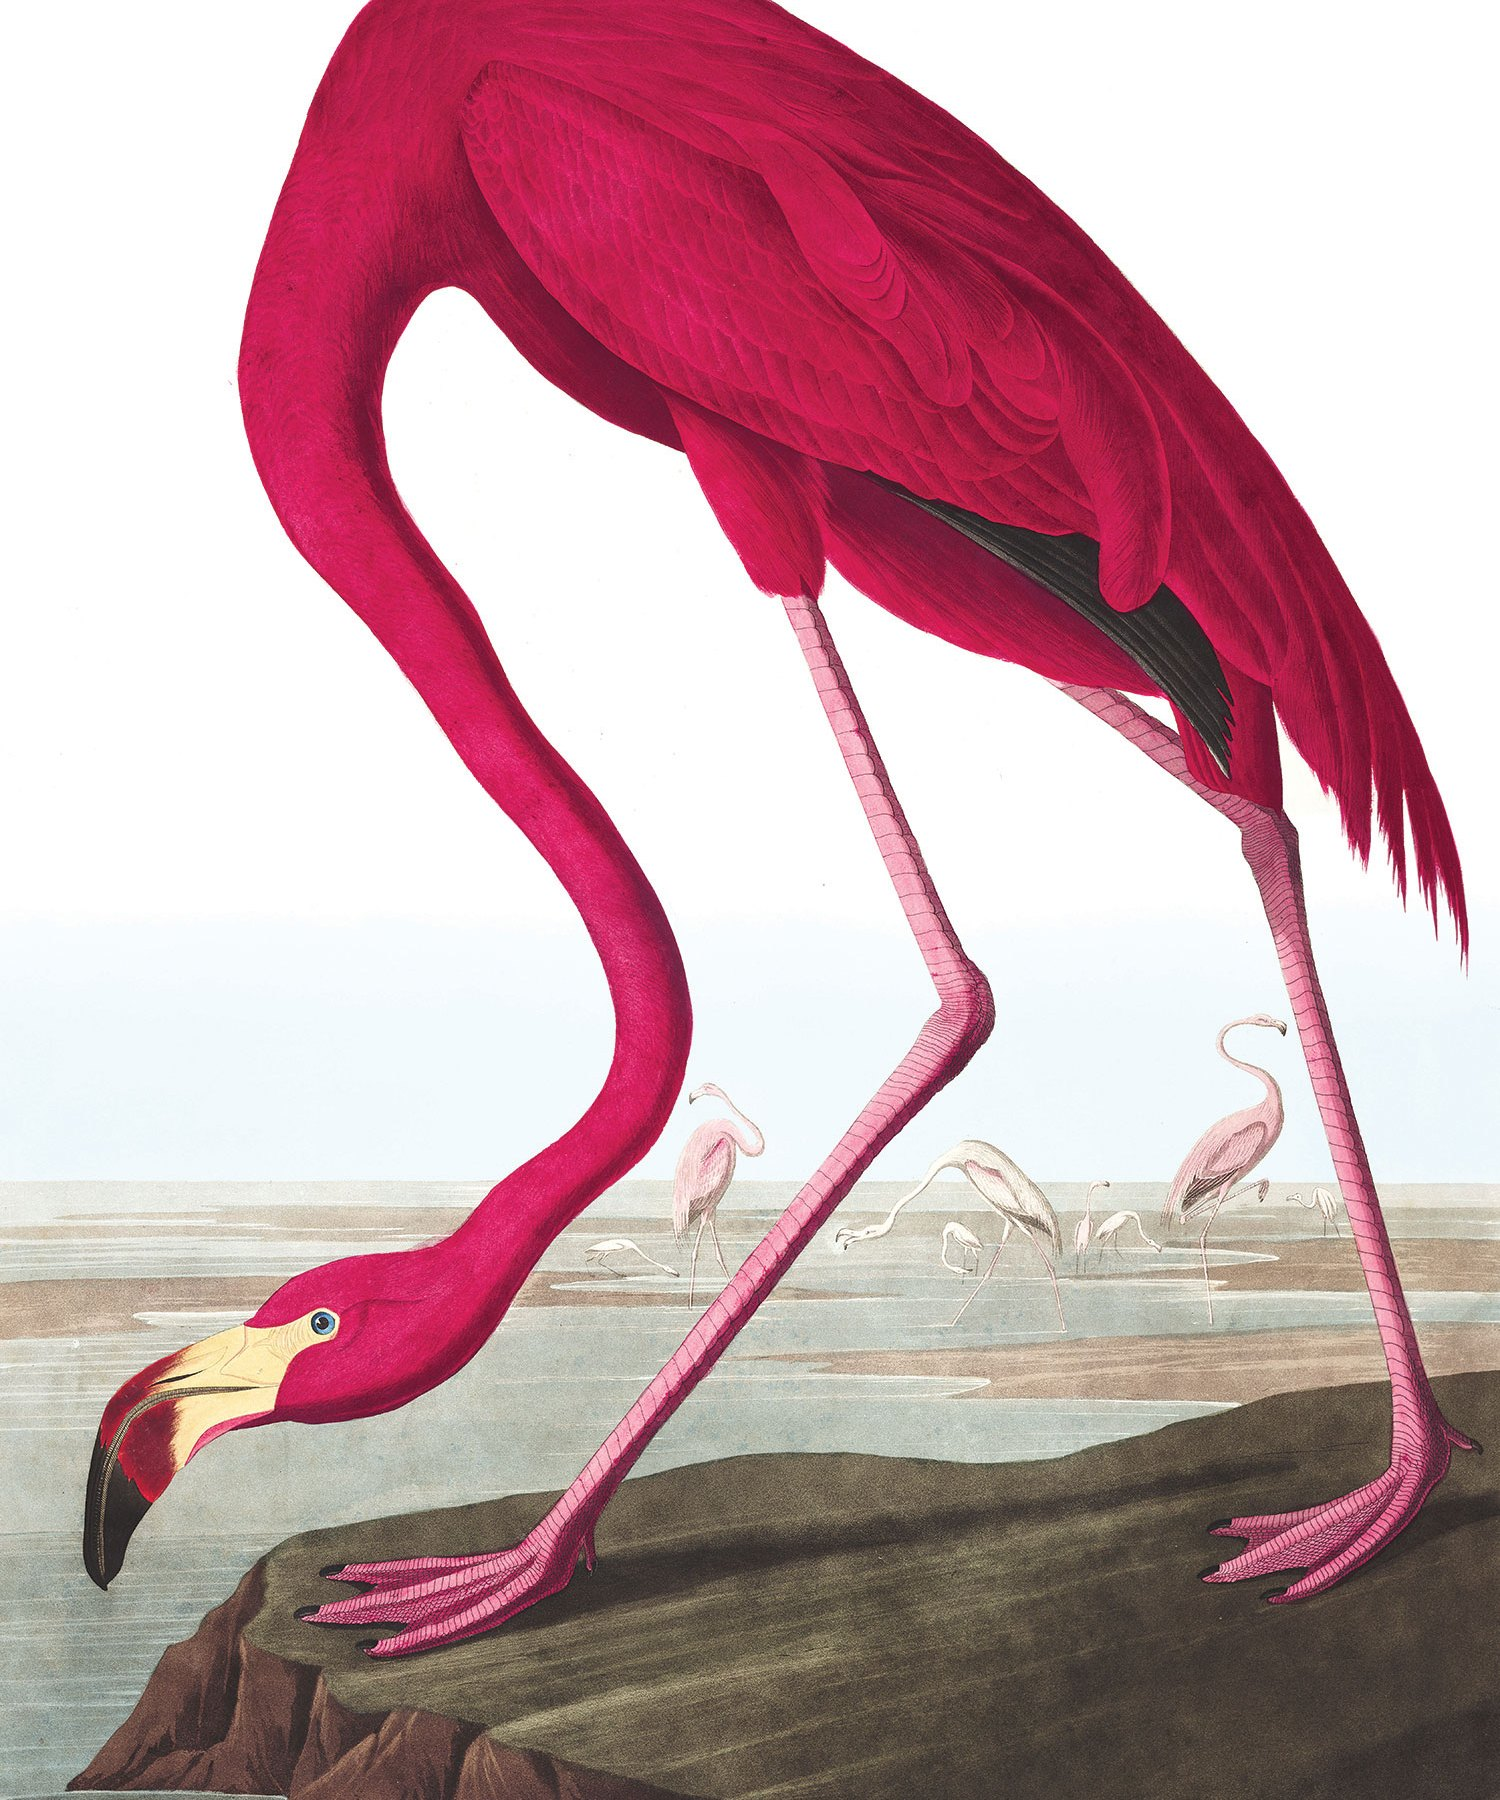 American Flamingo, John James Audubon (1838)